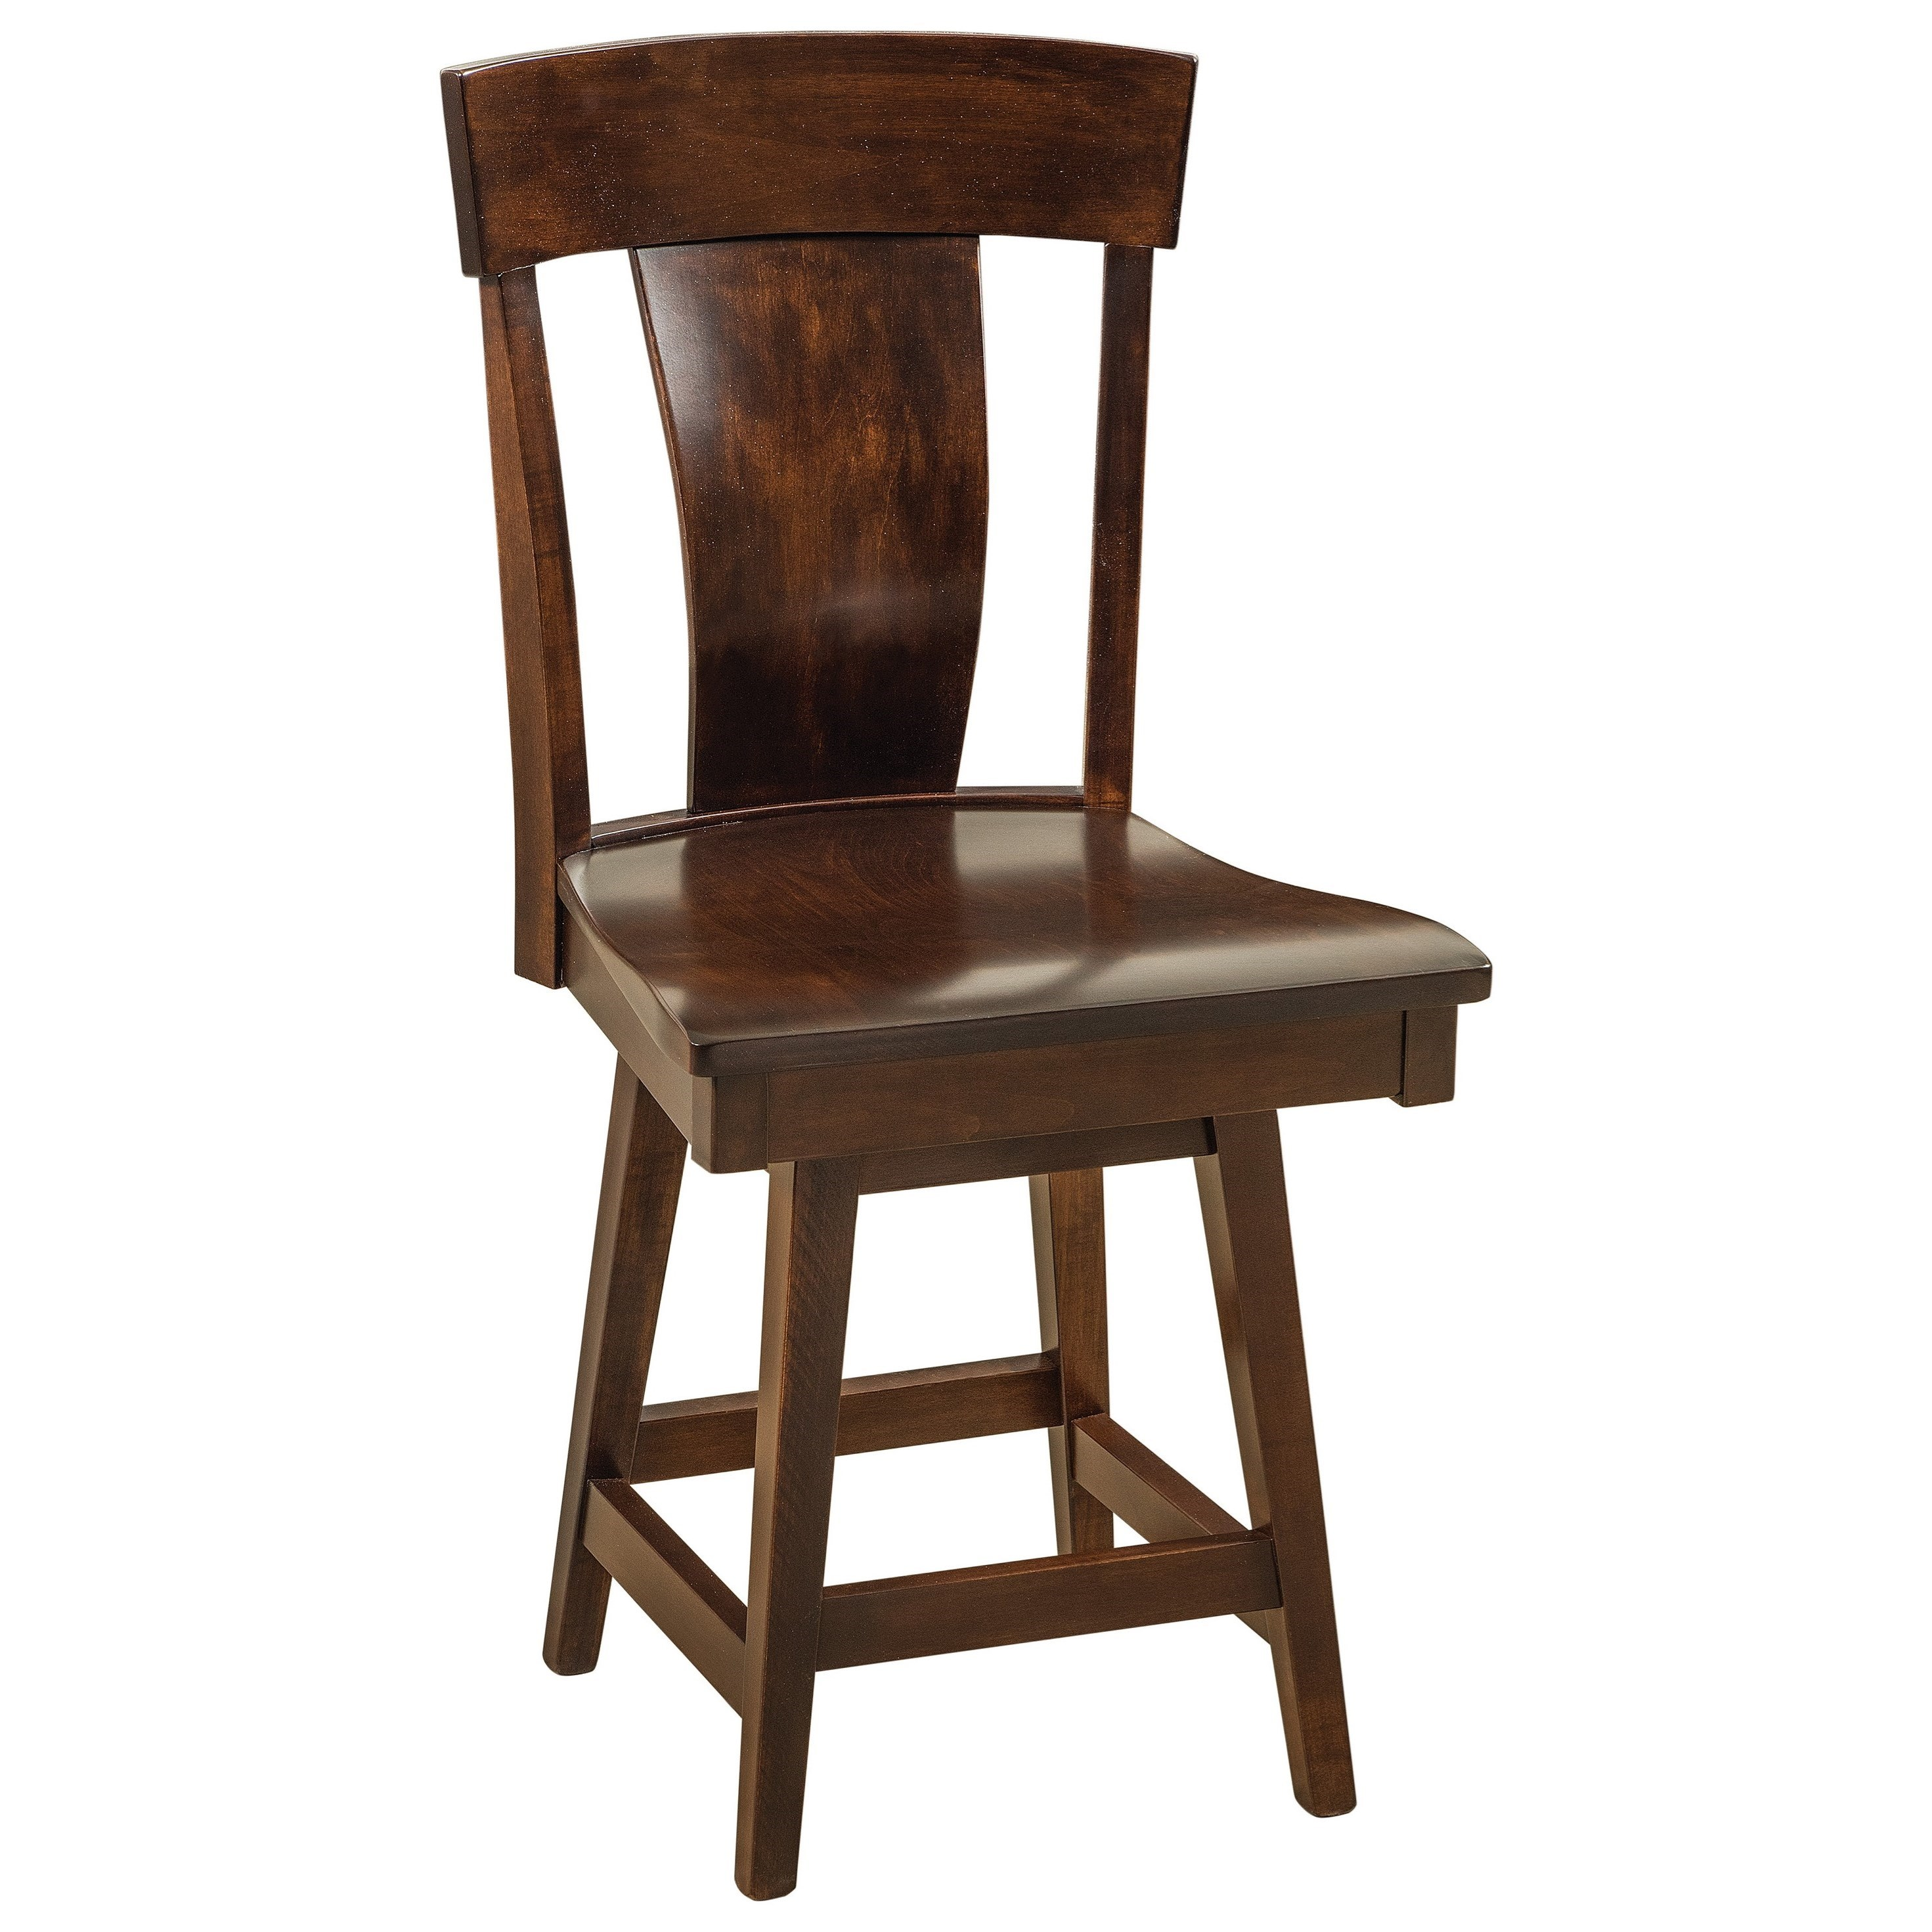 Swivel Counter Height Stool - Leather Seat